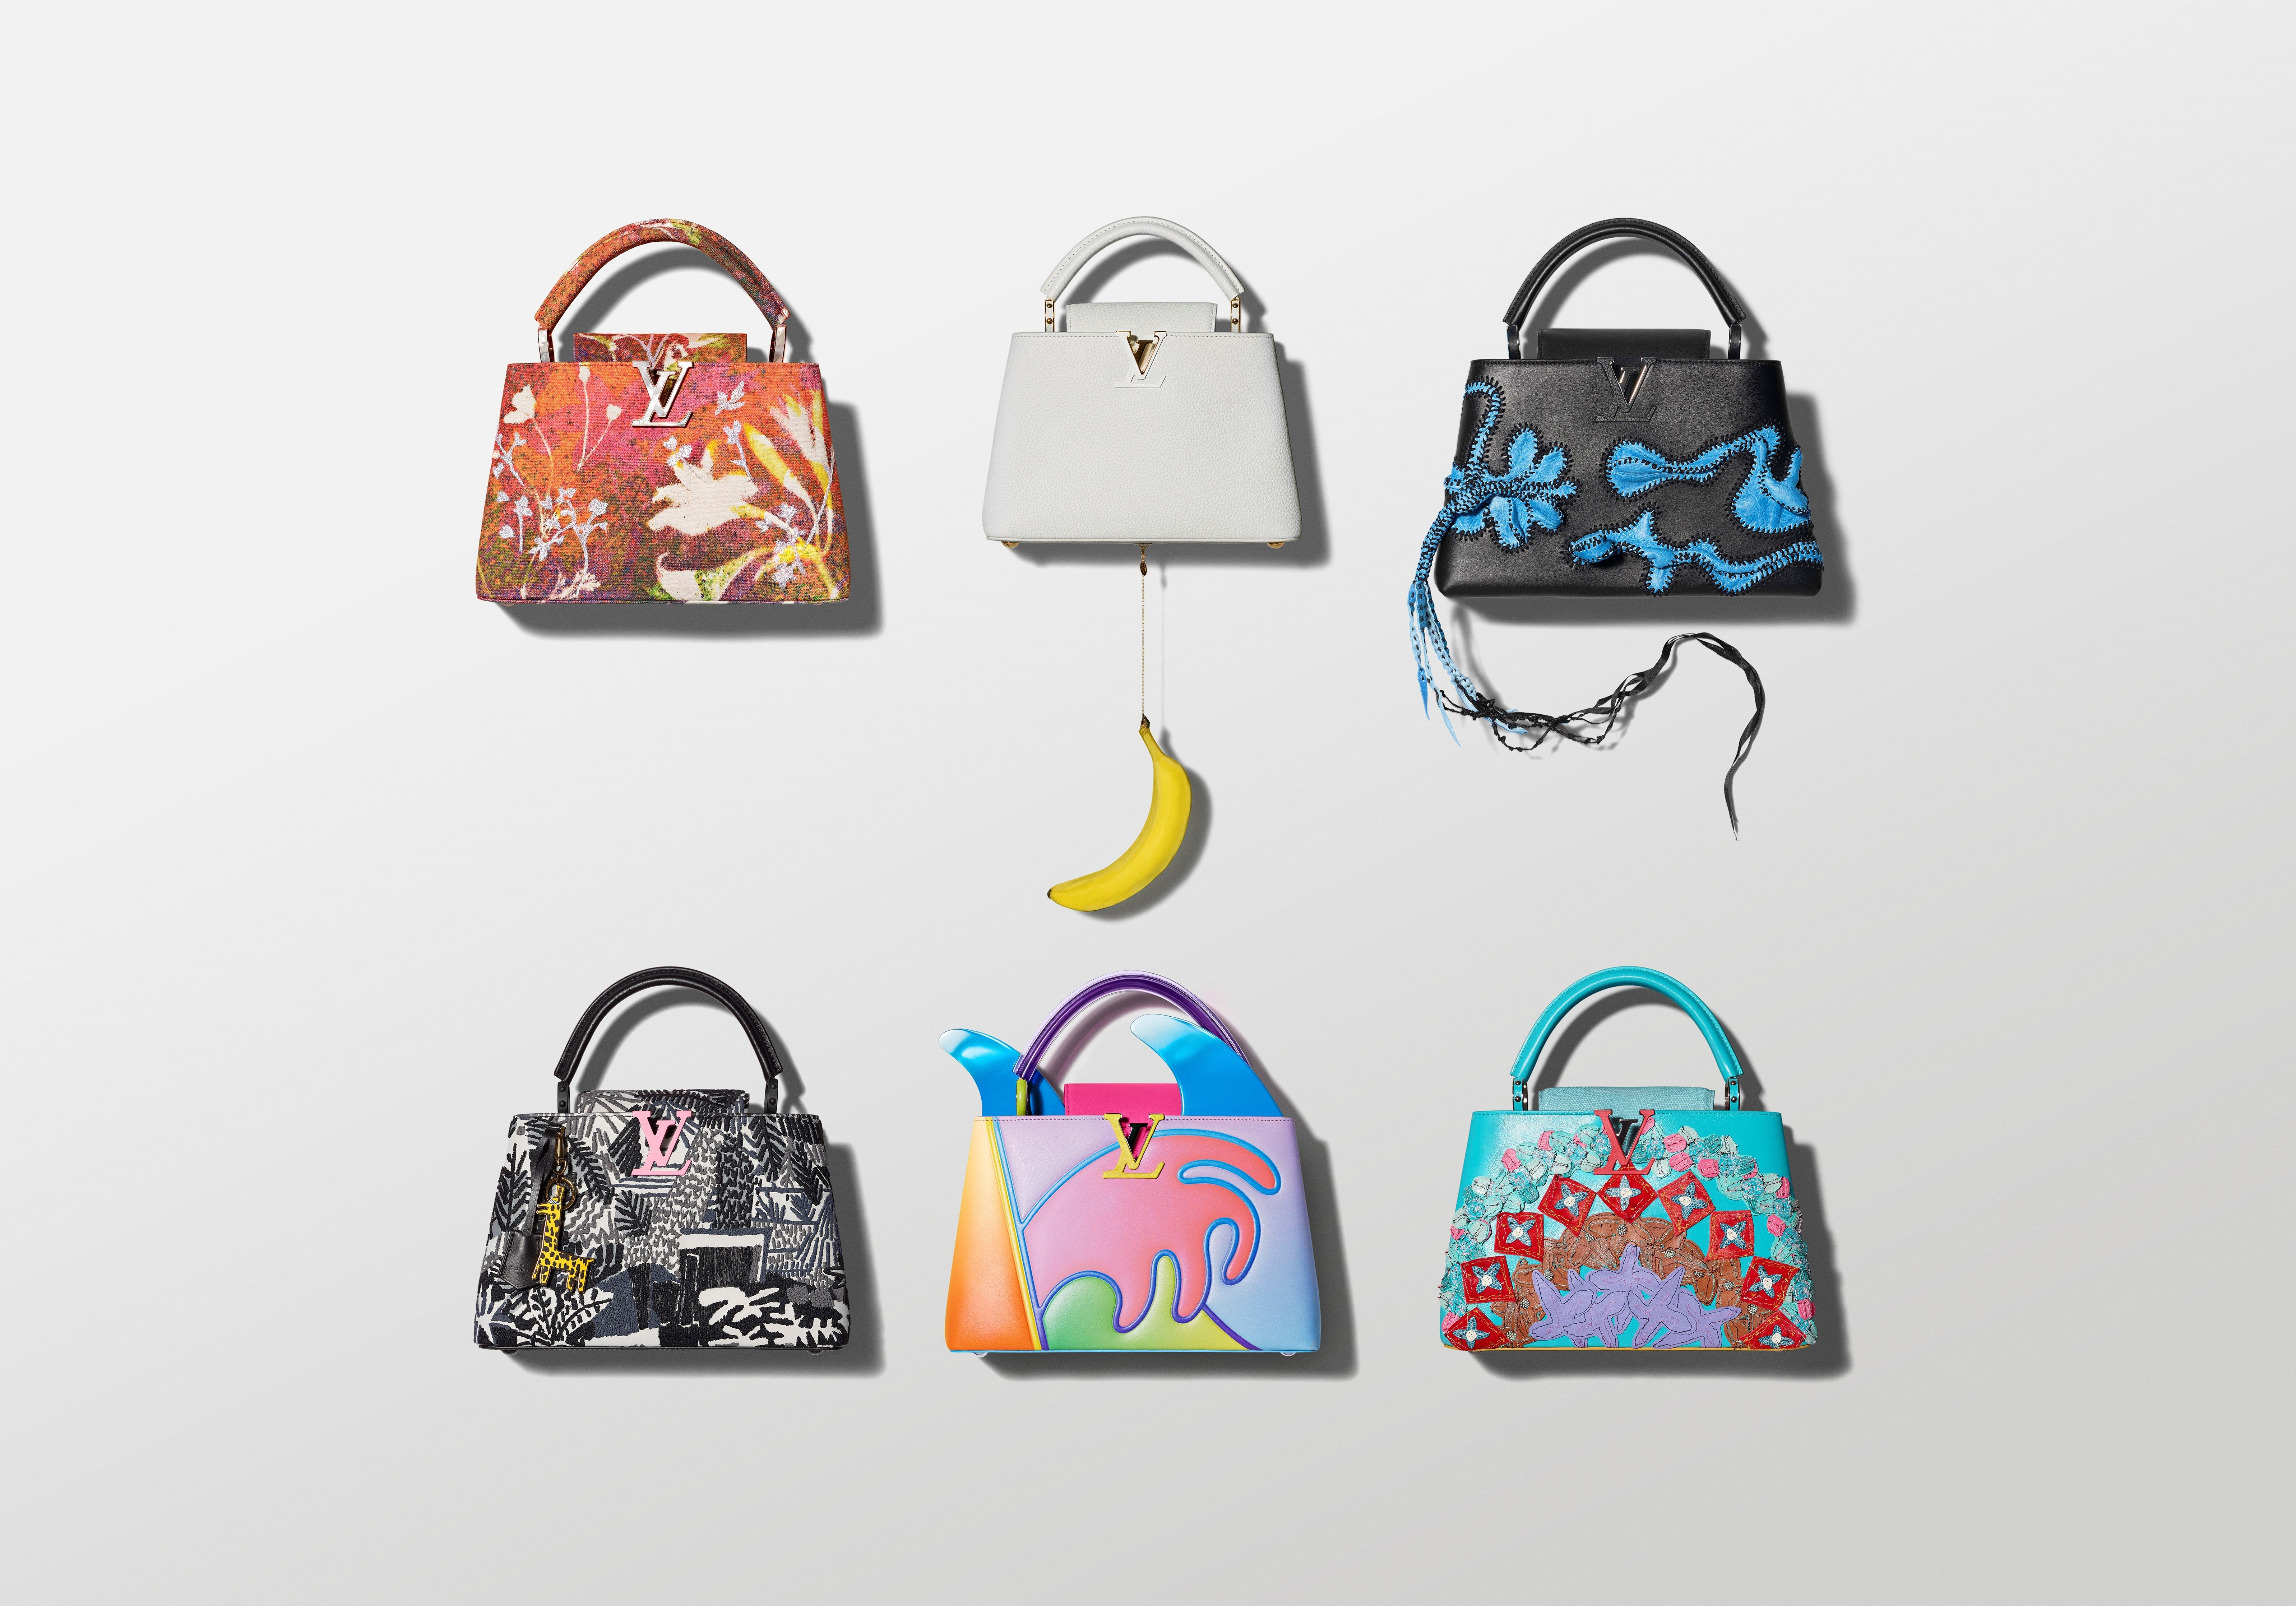 925175c8f5 What makes Louis Vuitton's Artycapucines bags works of art?   South ...